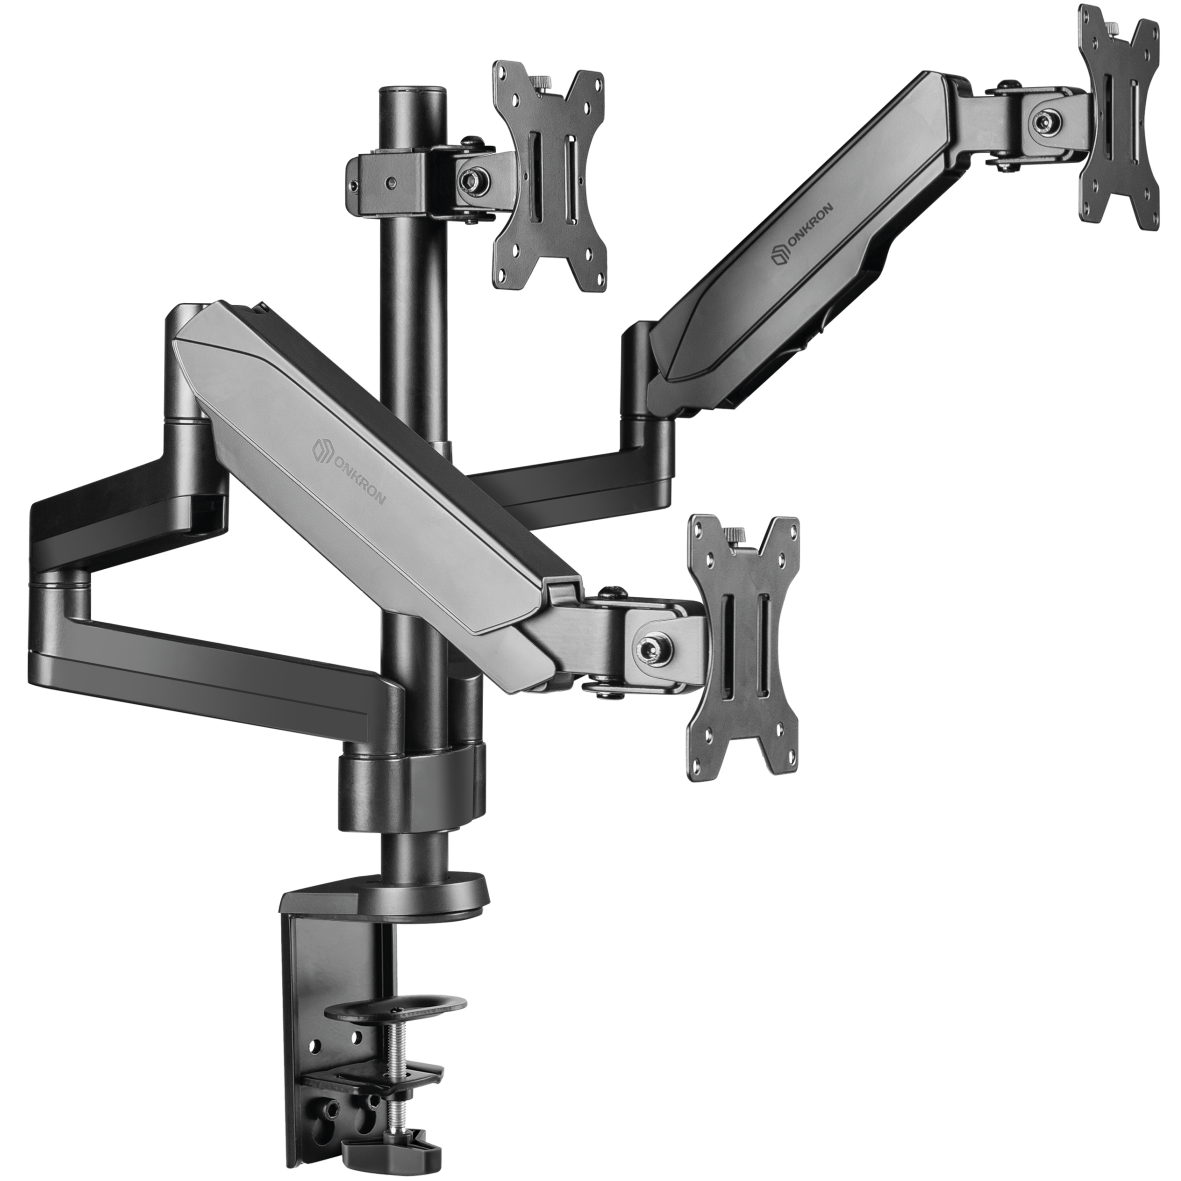 """ONKRON Triple Monitor Desk Mount Stand for 13"""" - 32 Inch 17.6 lbs G280 Black"""